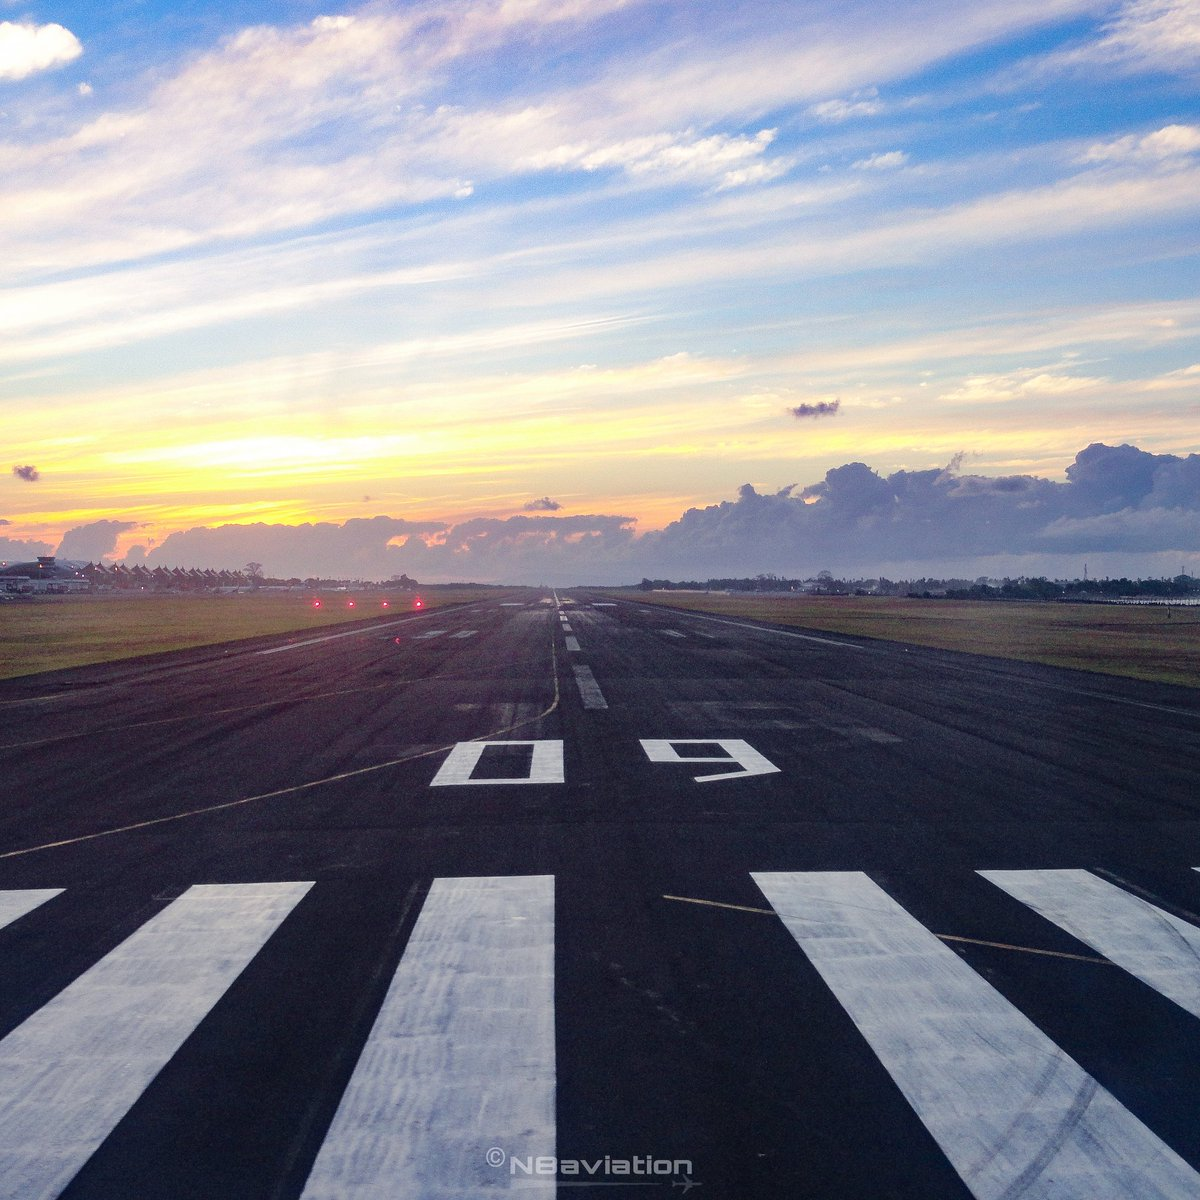 📸10 Aug 13 ✈️🇮🇩 An early wake up call is well worth it when the morning sky showcases it's brilliance of colours. Lining up for #takeoff runway 09 Bali. #sunrise #love #passion #weather #indonesia #bali #denpasar #piano #threshold #runway #golden #sky #Throwback #memory https://t.co/3jkKnJdEvJ